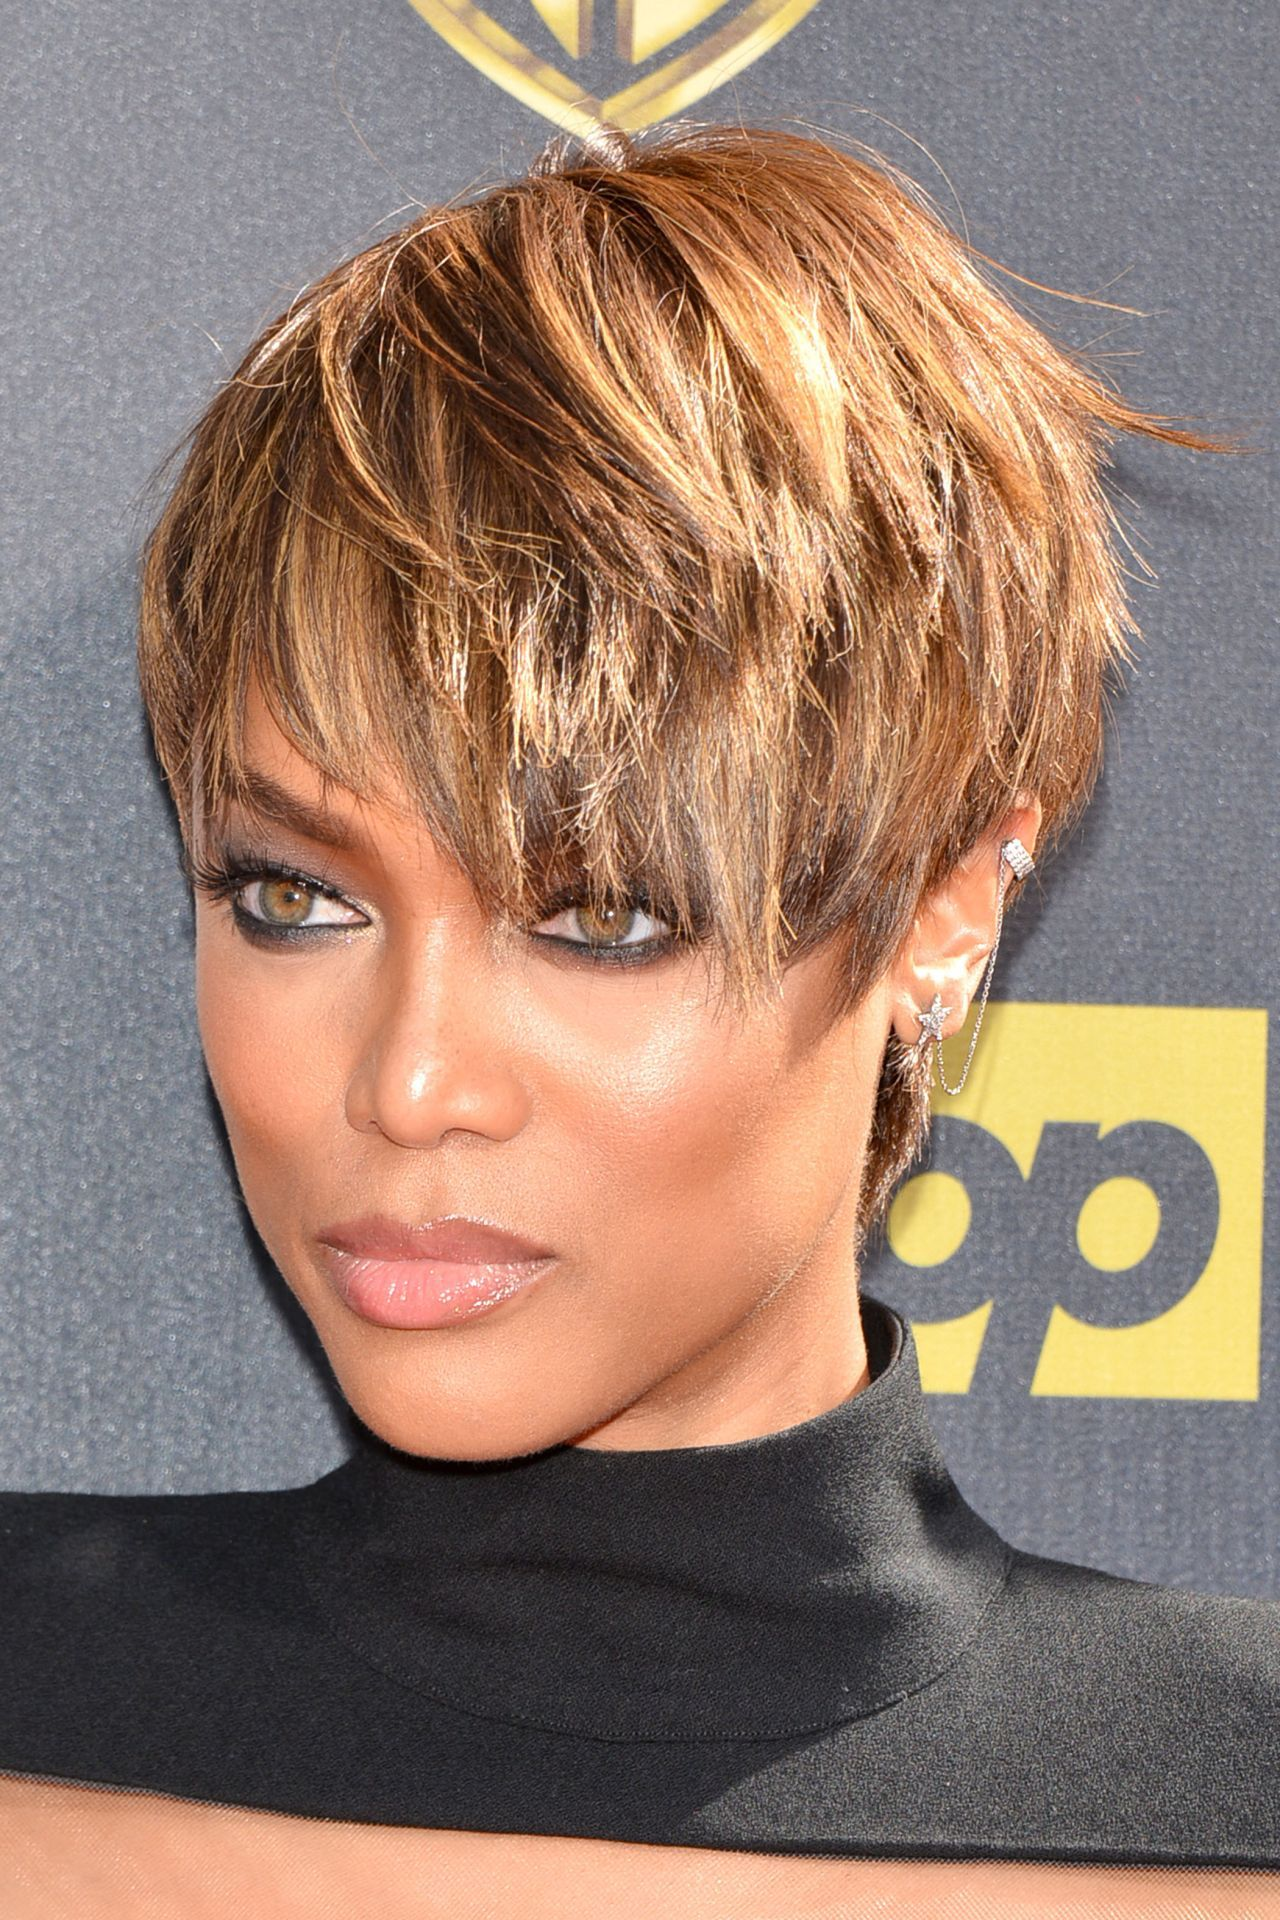 tyra banks short hairstyle Google Search